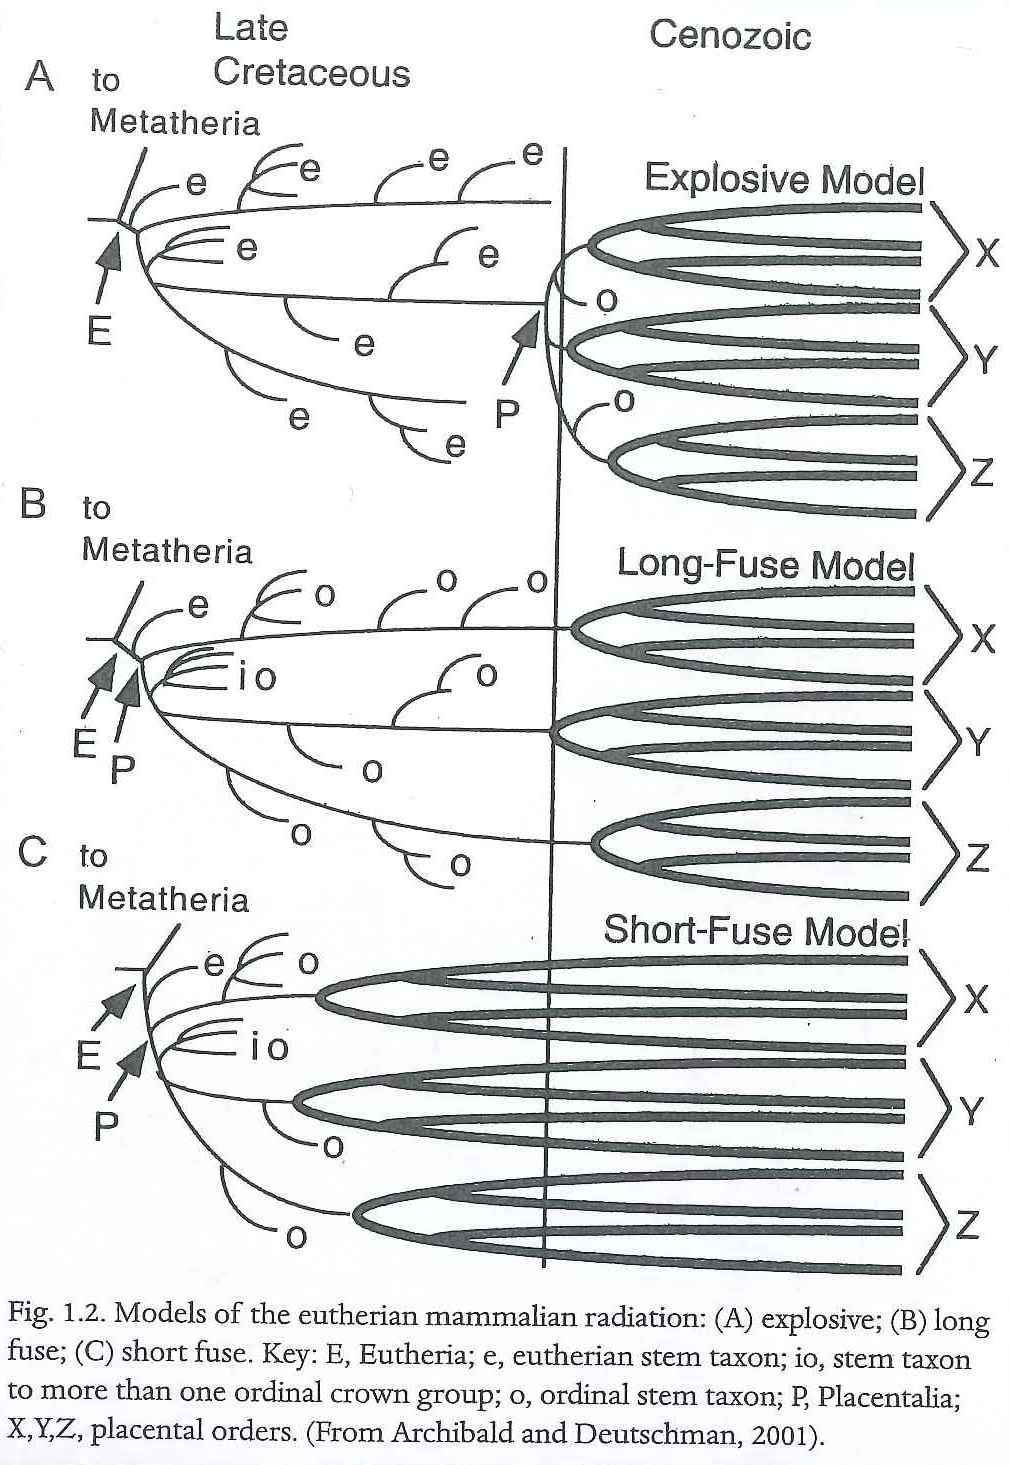 Models of placental mammal radiation (Rose, 2006).